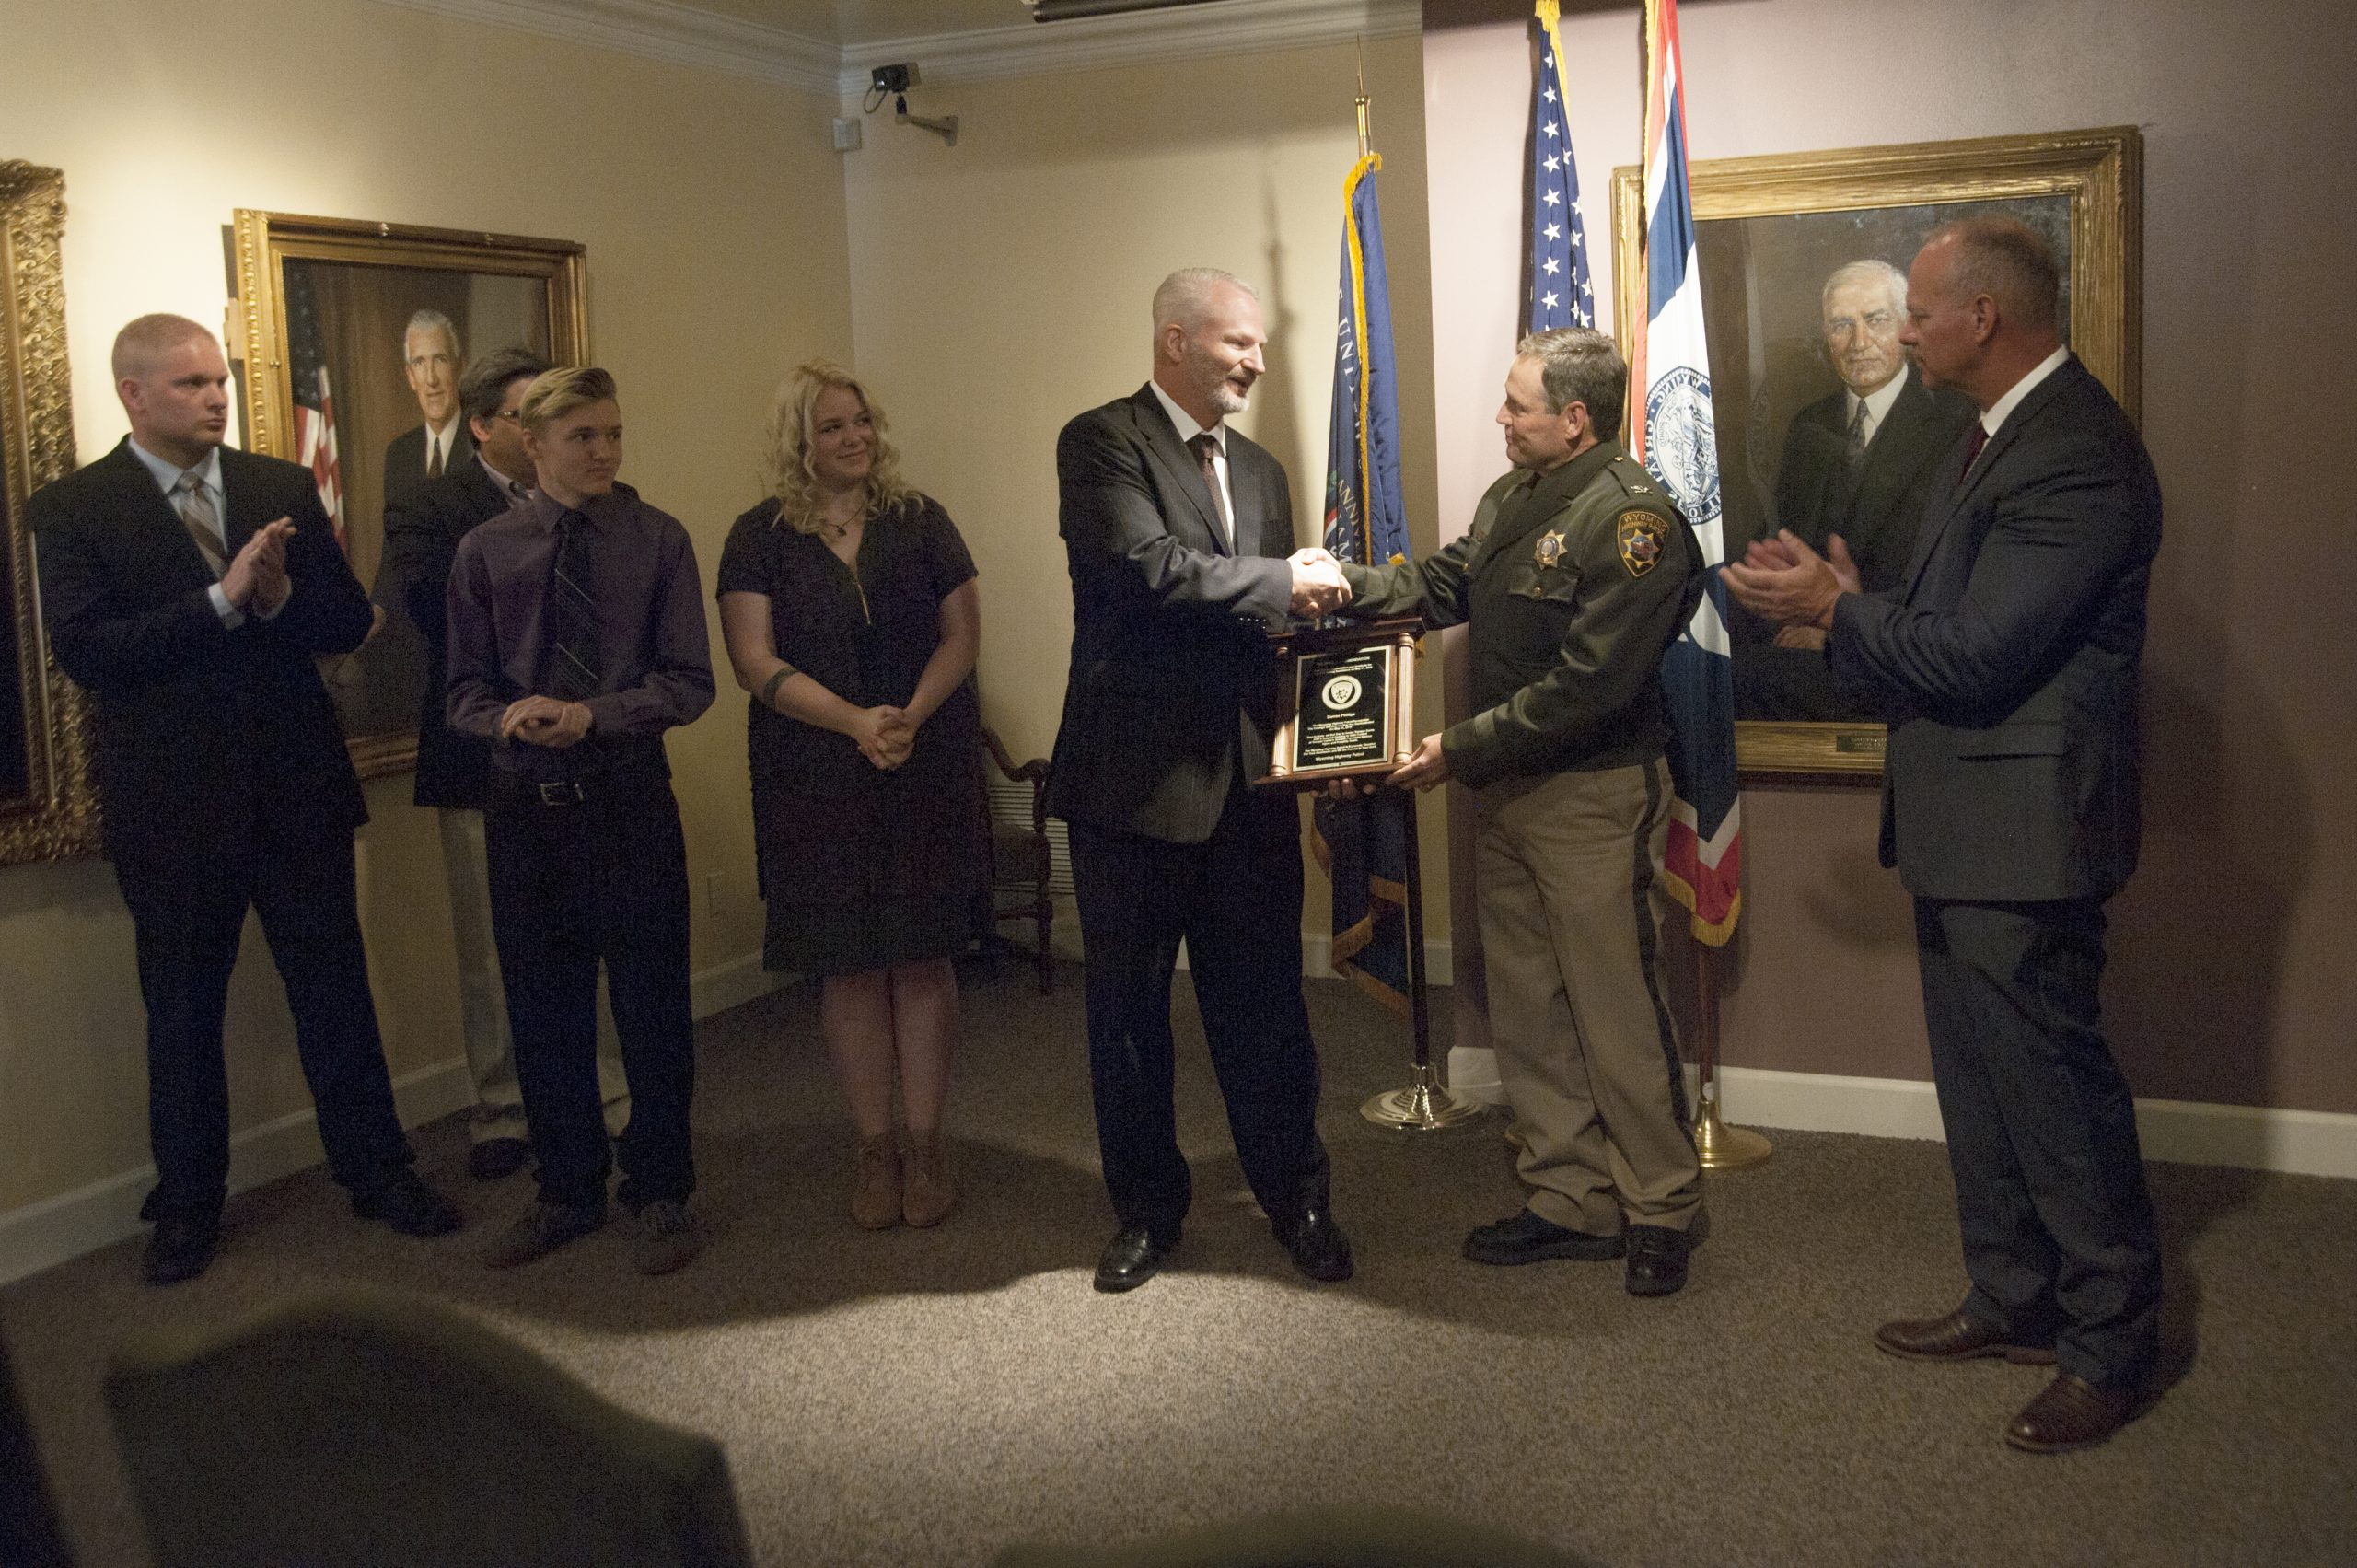 Wyoming Highway Patrol Honors Citizen For Assisting Trooper When Suspect Attempted to Take Gun